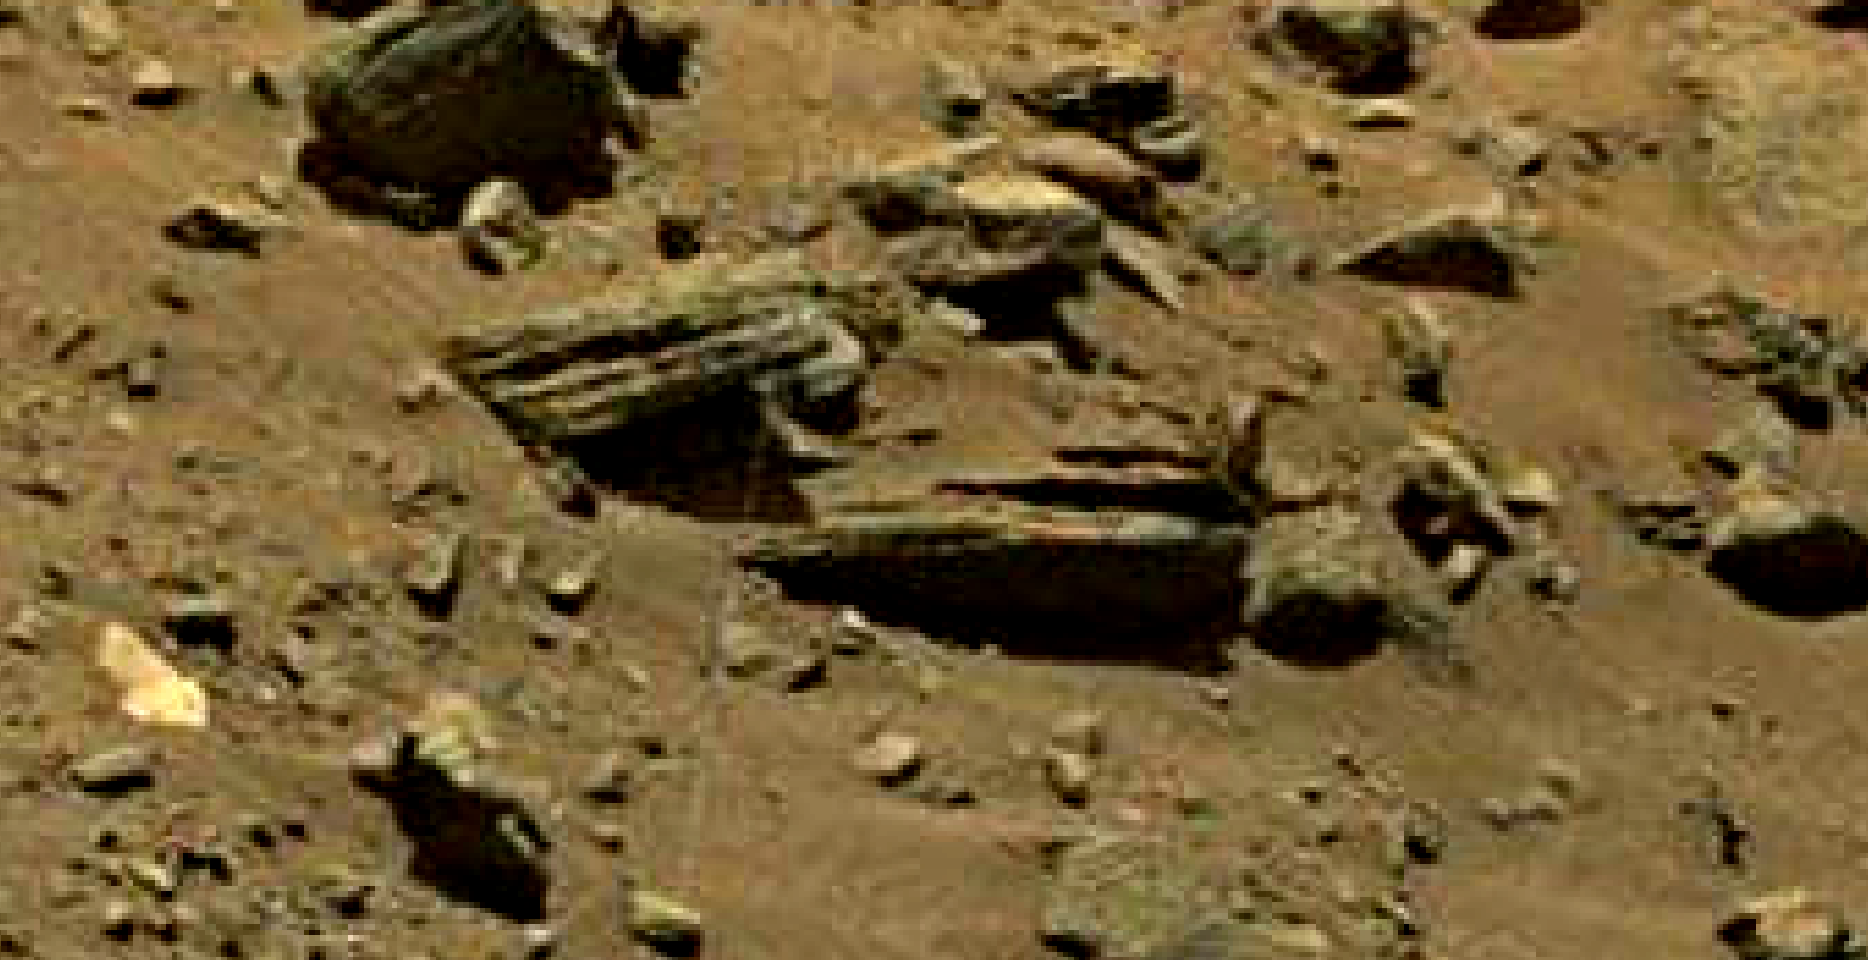 mars sol 1399 anomaly artifacts 10 was life on mars